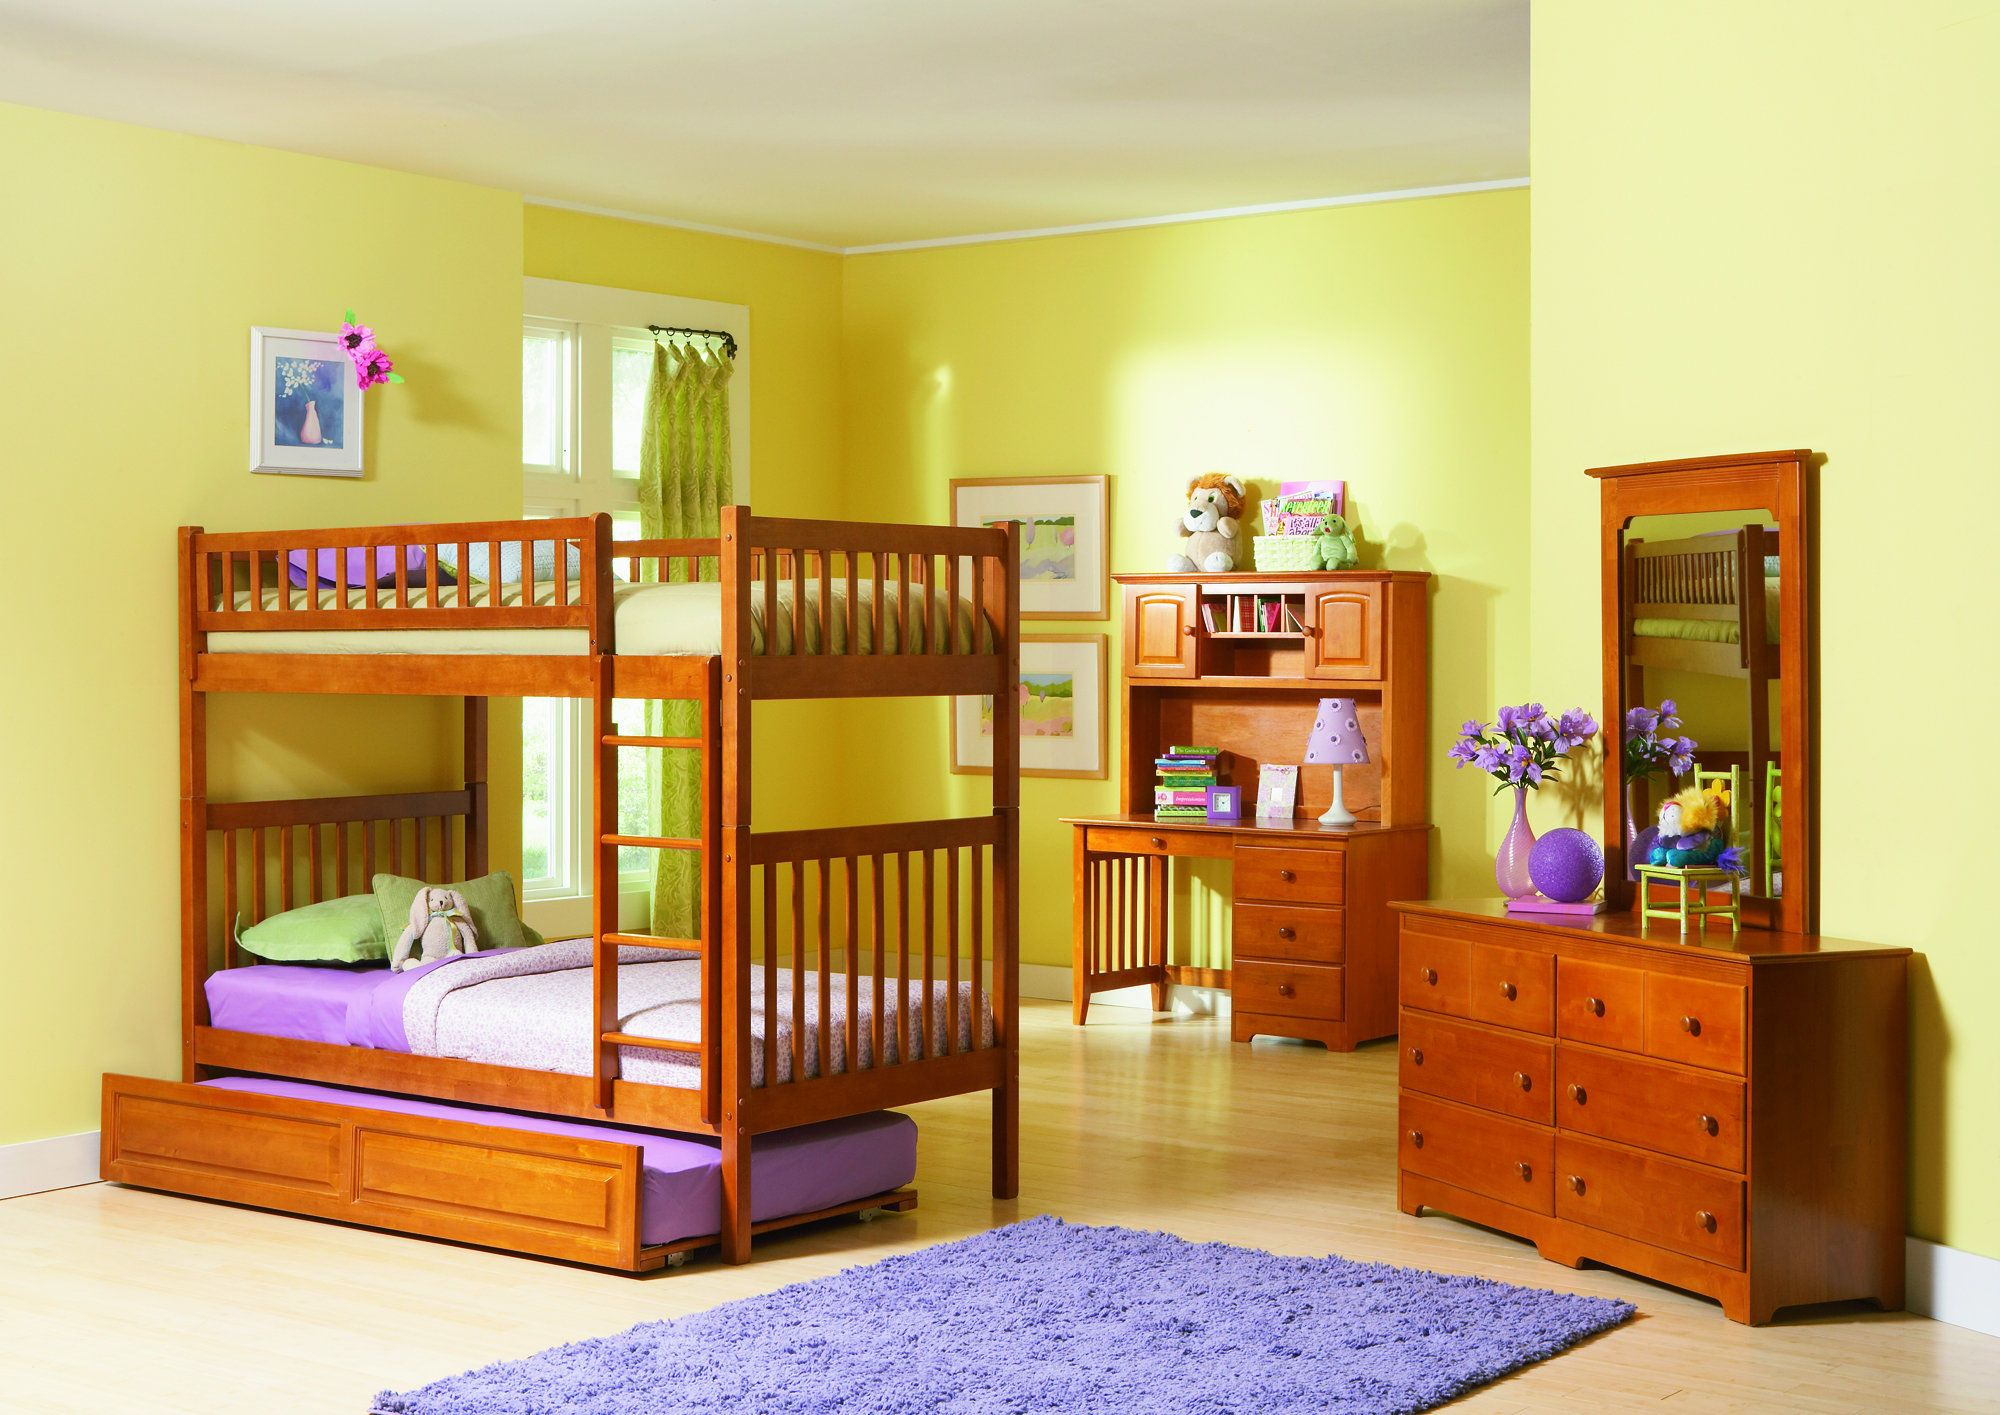 1086a Children Bedroom Sets Free Download Picture | Children ...